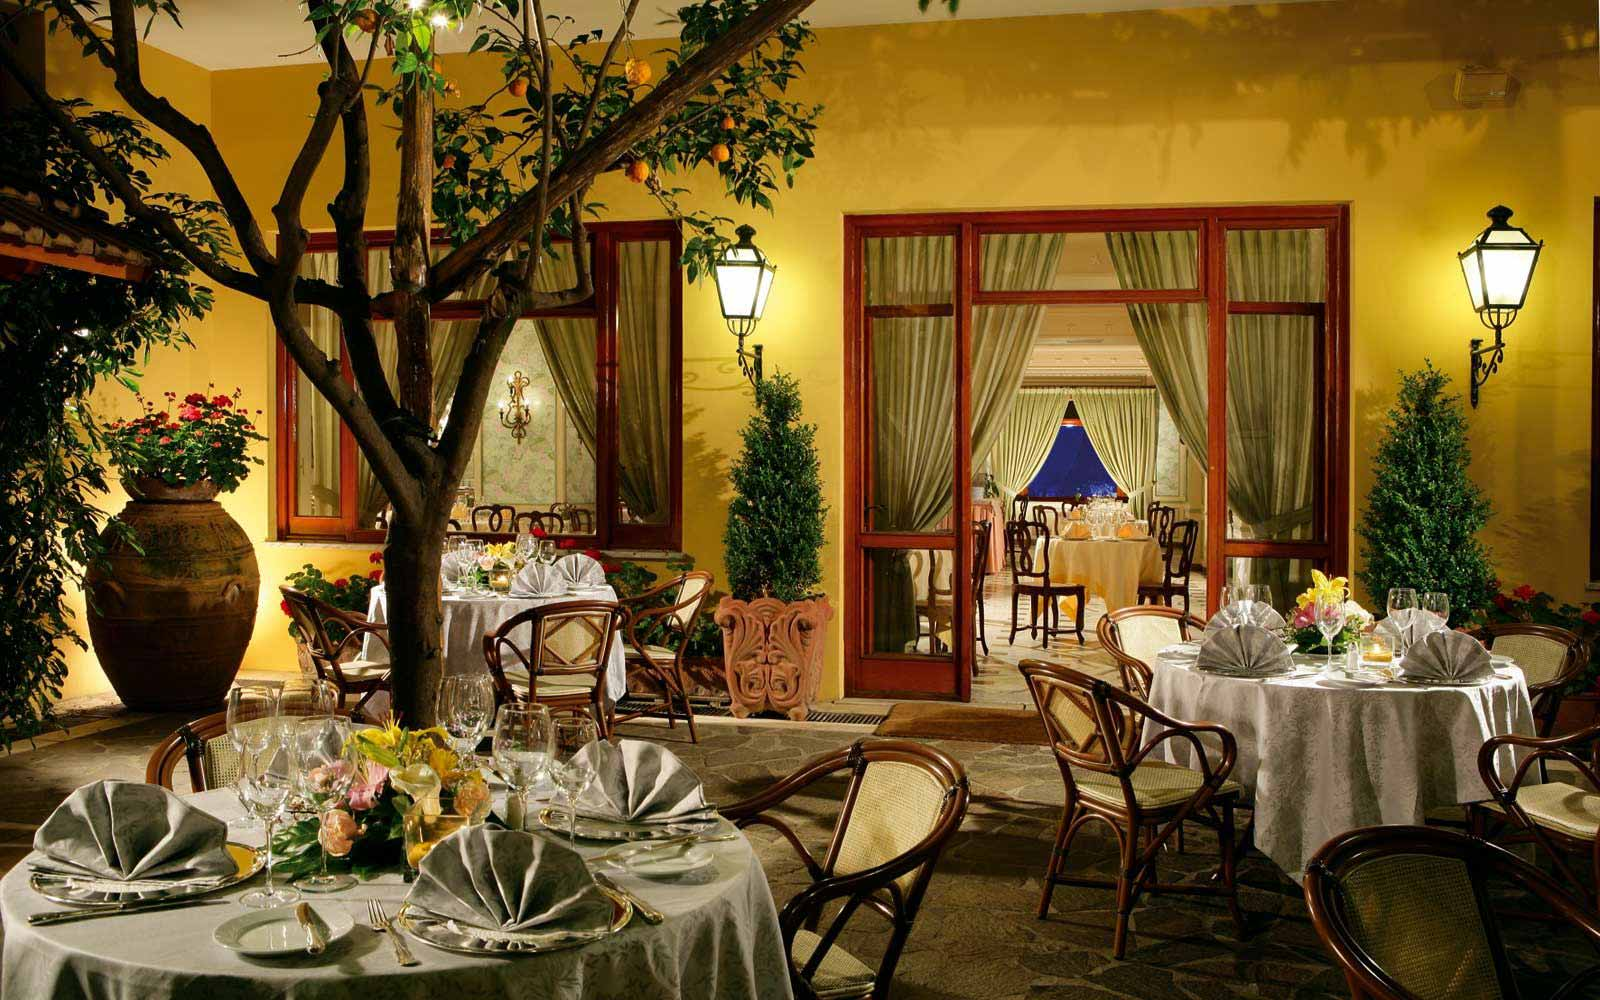 Outdoor dinning at Grand Hotel de la Ville